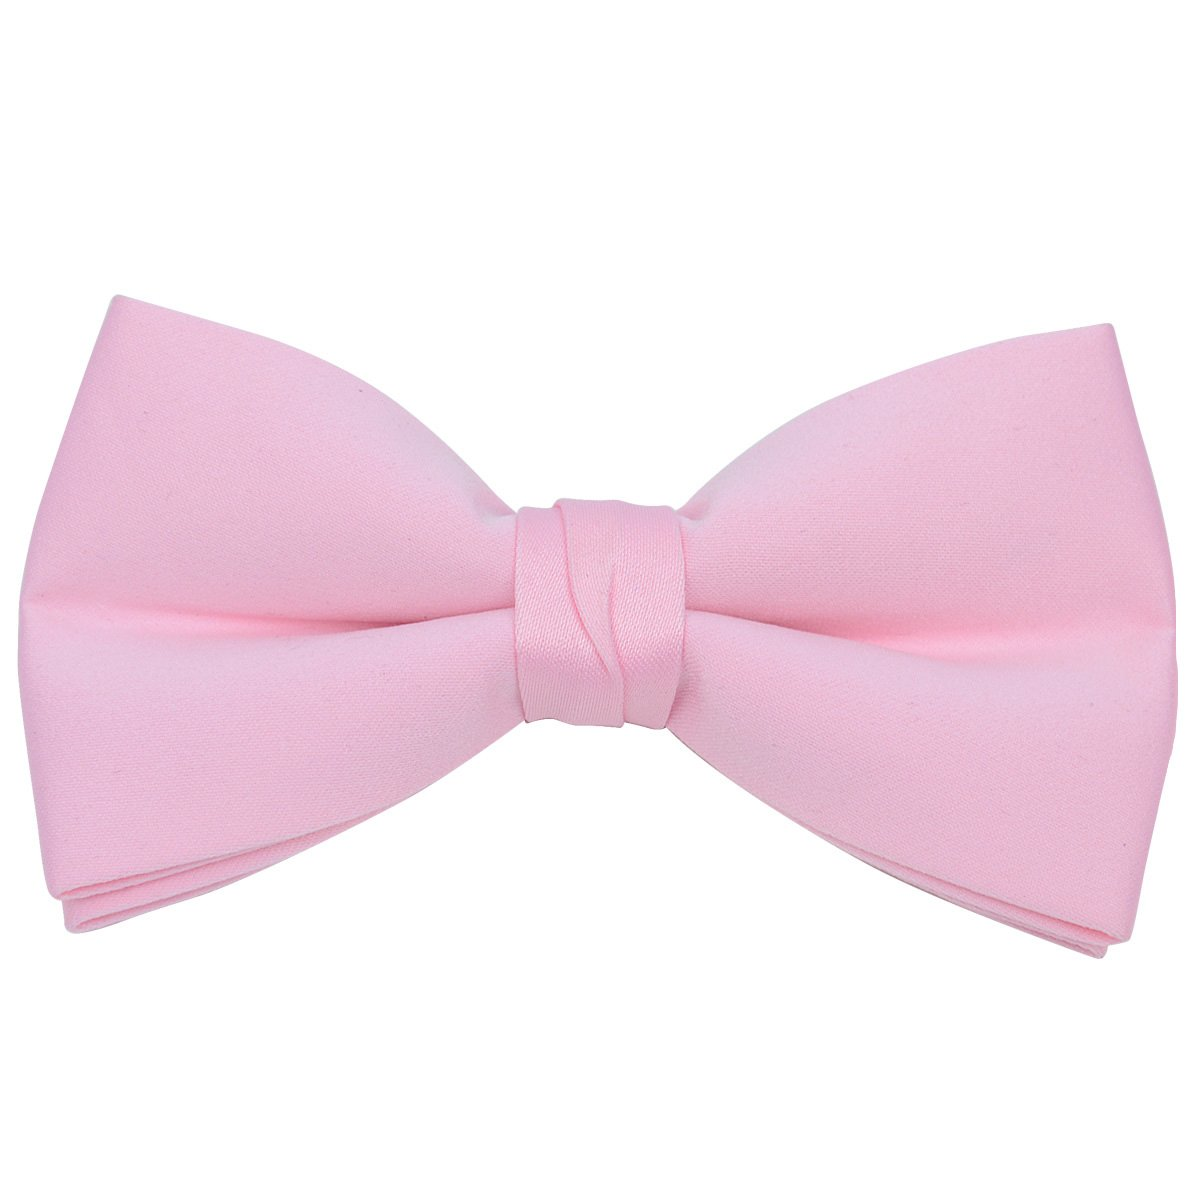 6 Pieces Pack Boy's Stylish Poly Satin Banded Clip On Bow Ties (Pink-6 Pack)